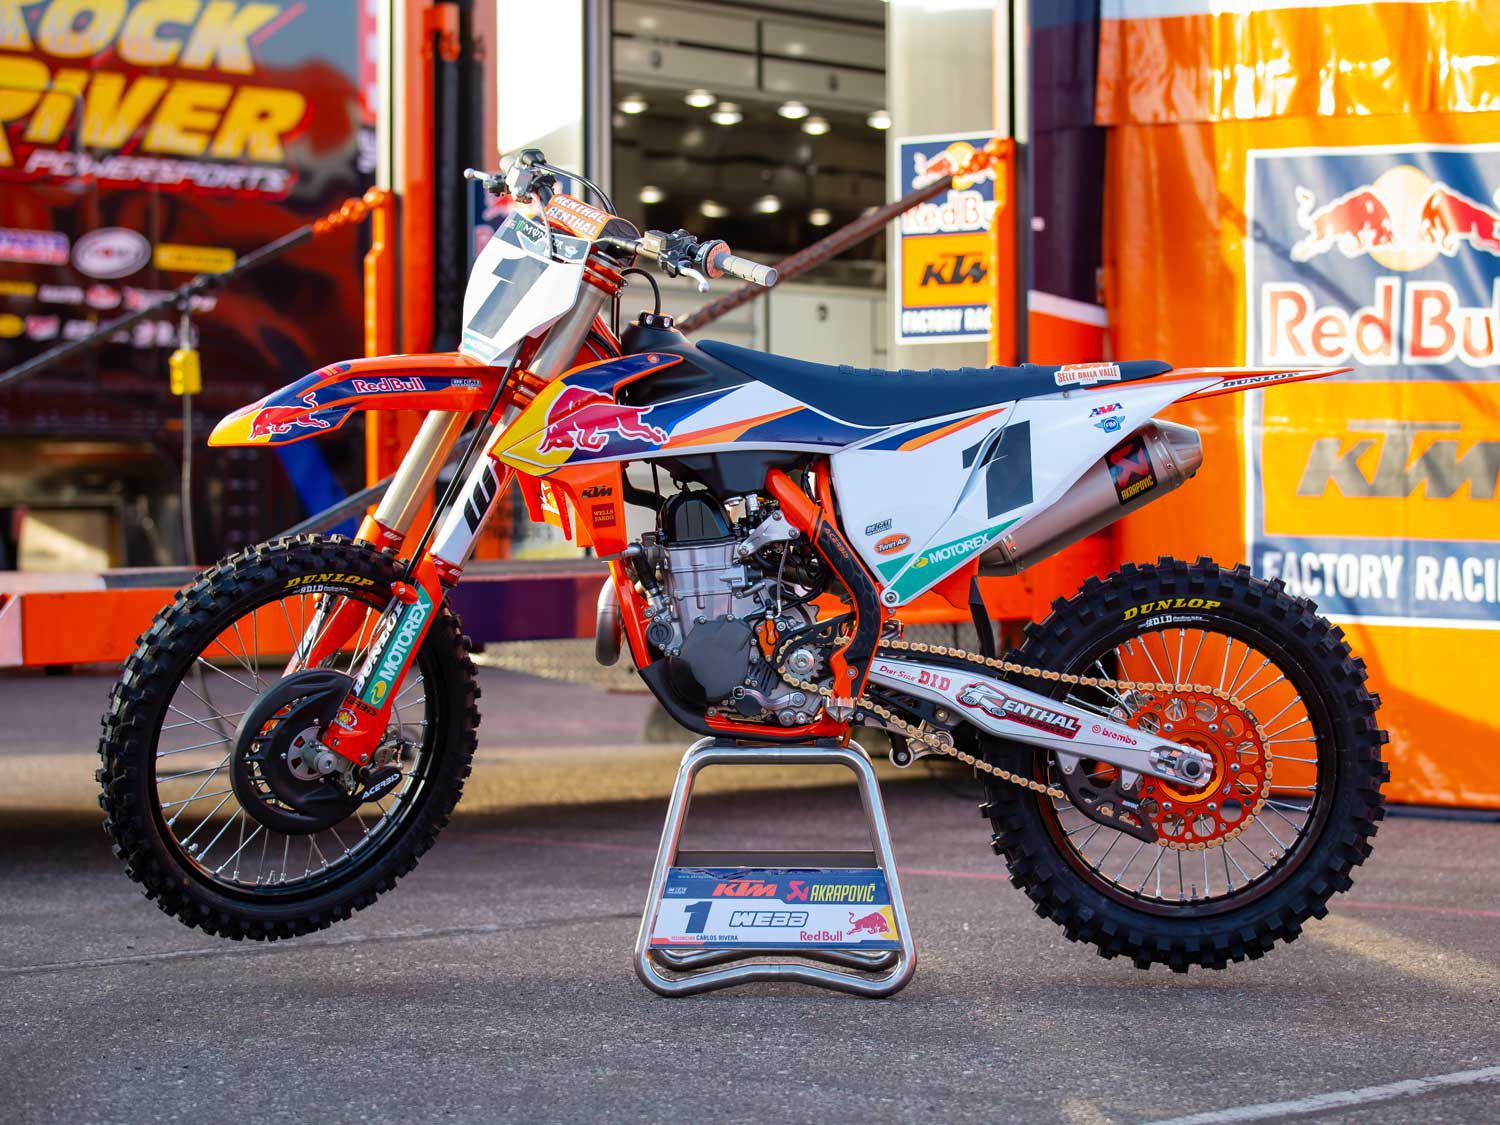 Webb's mechanic Carlos Rivera, who spent many seasons spinning wrenches for Ryan Dungey when he was winning premier class titles, took us through the reigning champ's 450 SX-F.